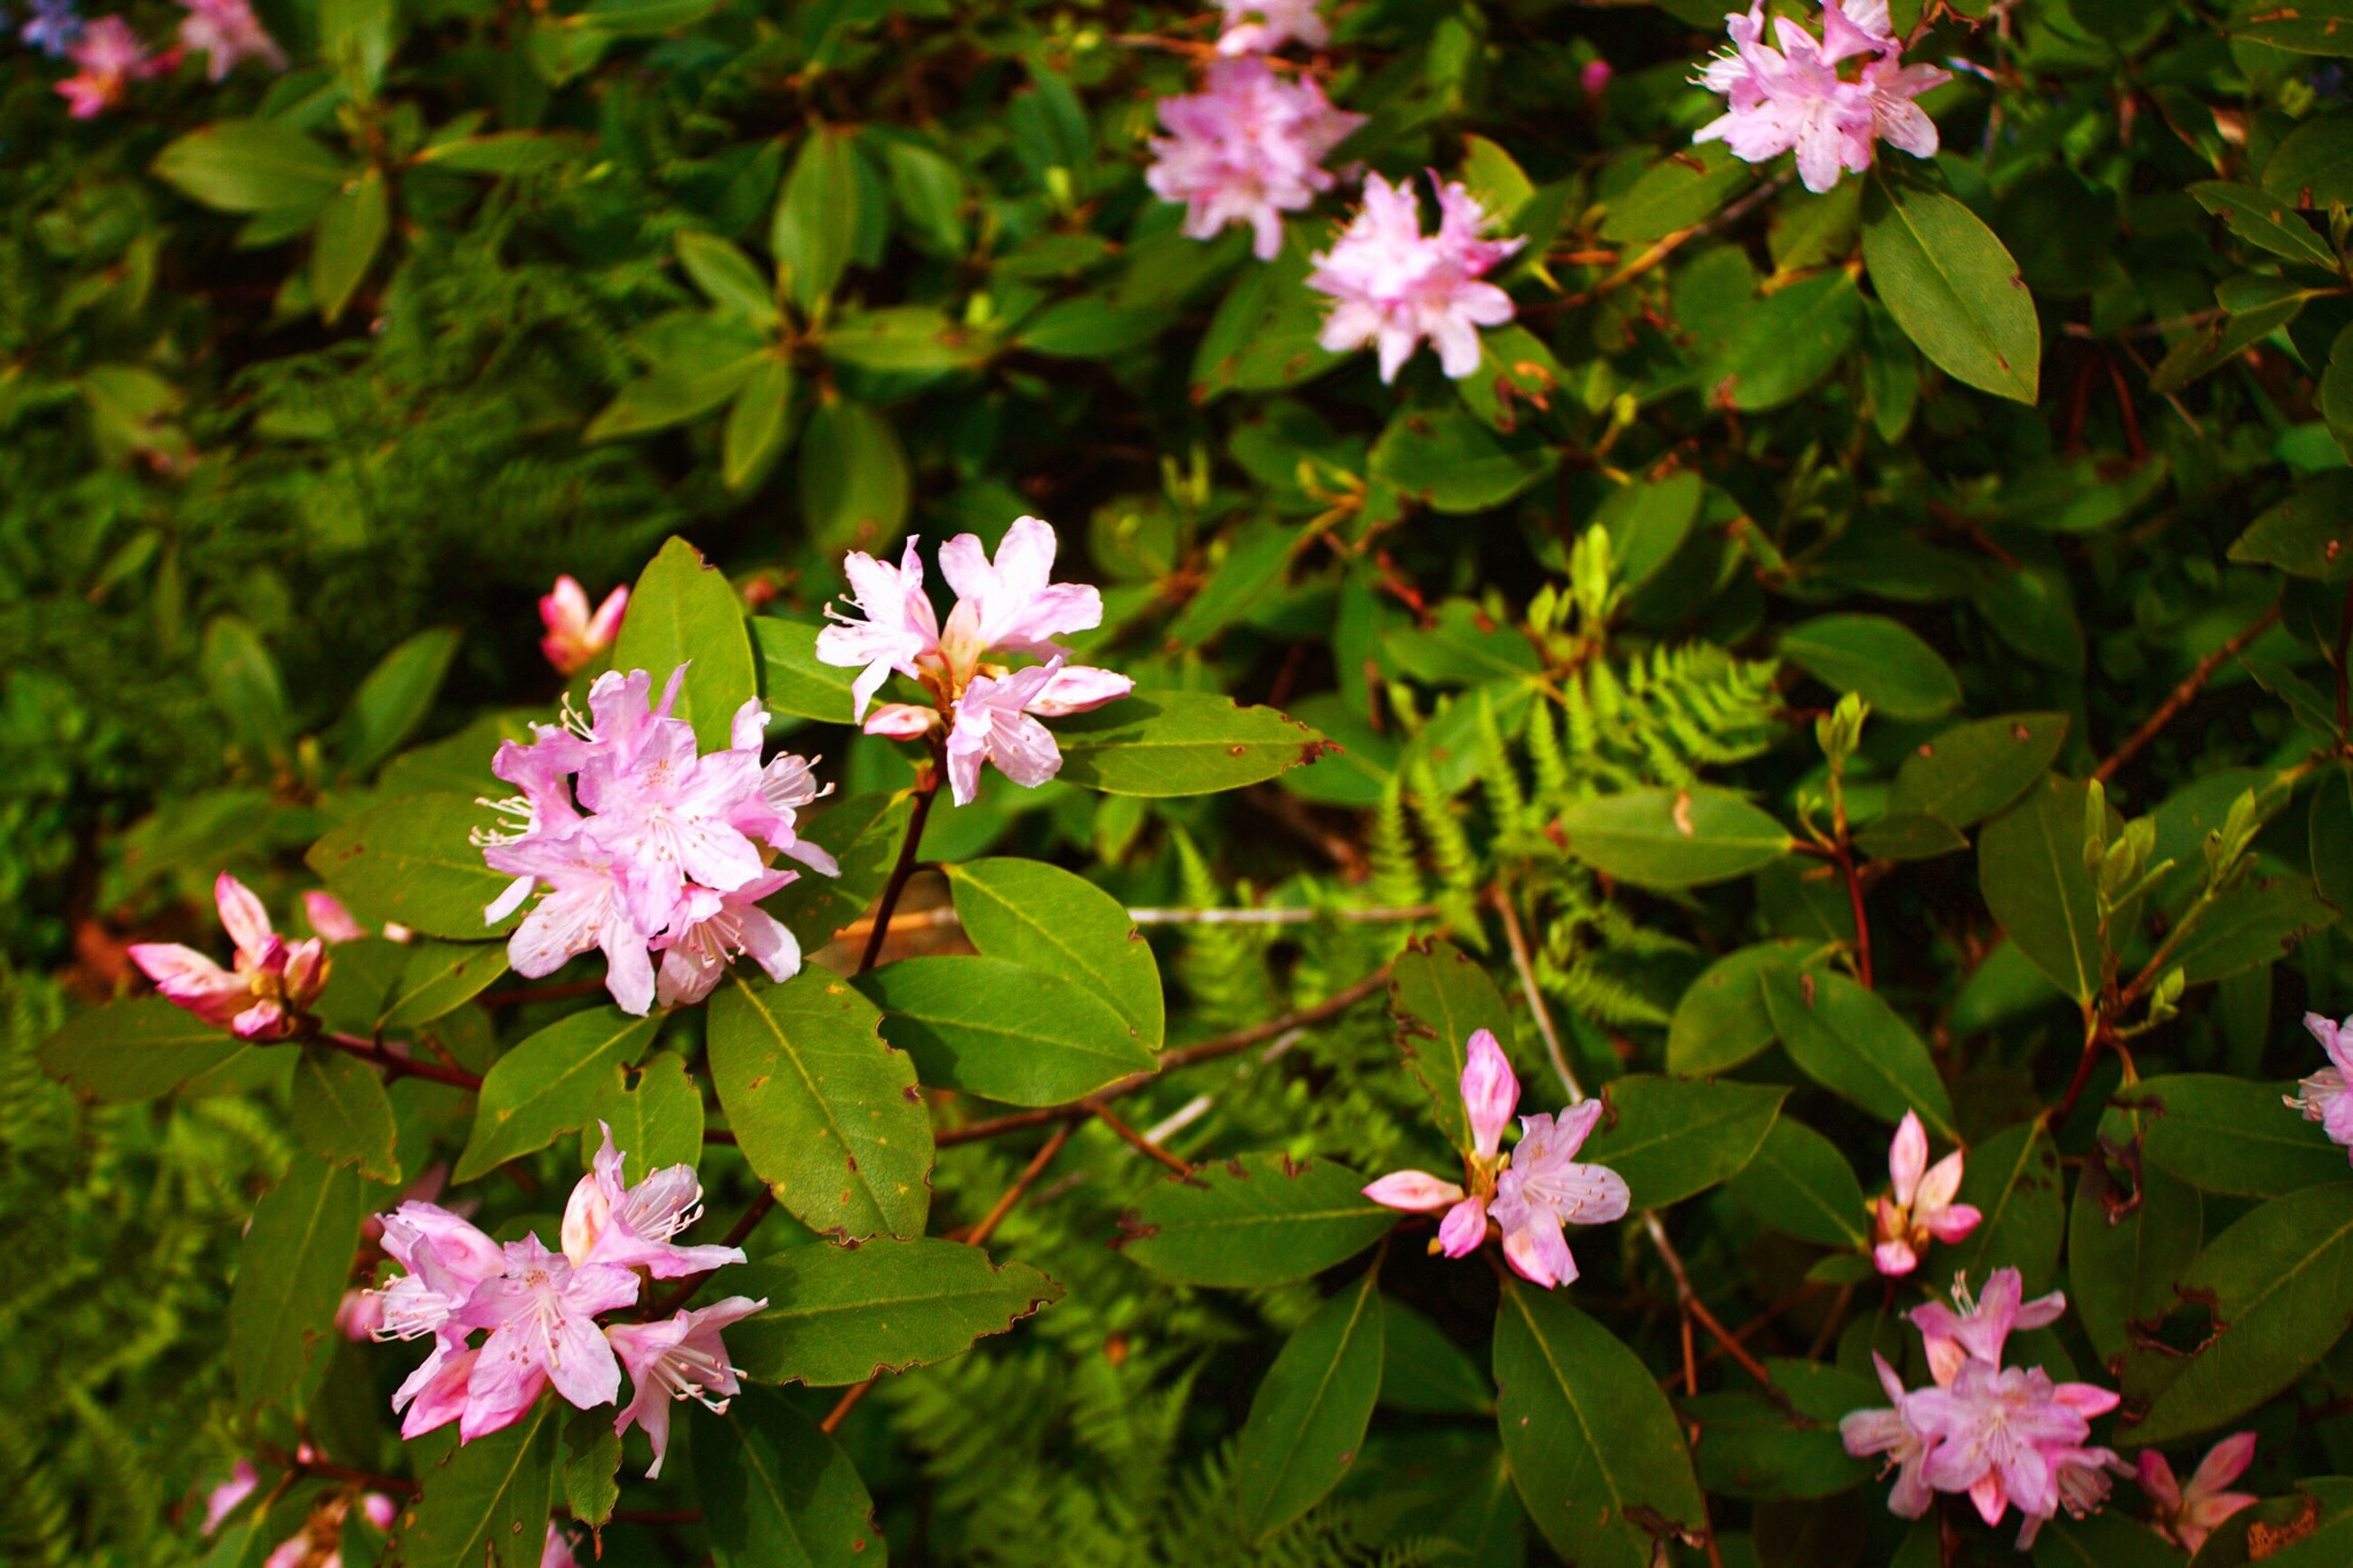 flower, growth, fragility, petal, freshness, nature, beauty in nature, pink color, flower head, leaf, blooming, plant, no people, day, focus on foreground, green color, outdoors, close-up, periwinkle